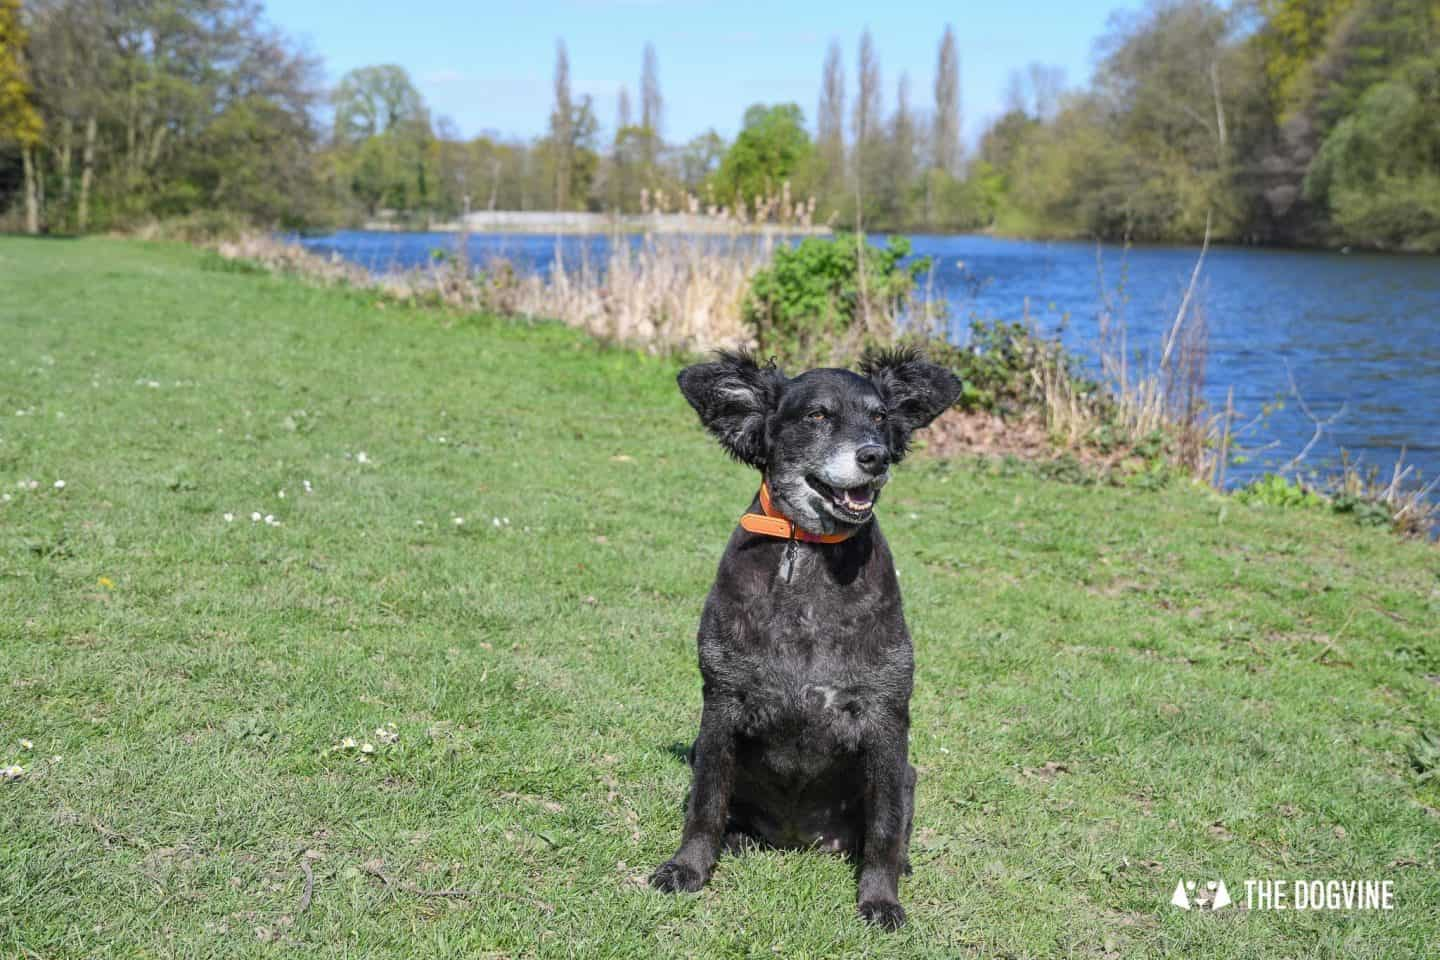 Dog-Friendly Osterley Park and House - Visiting With Your Dog 9